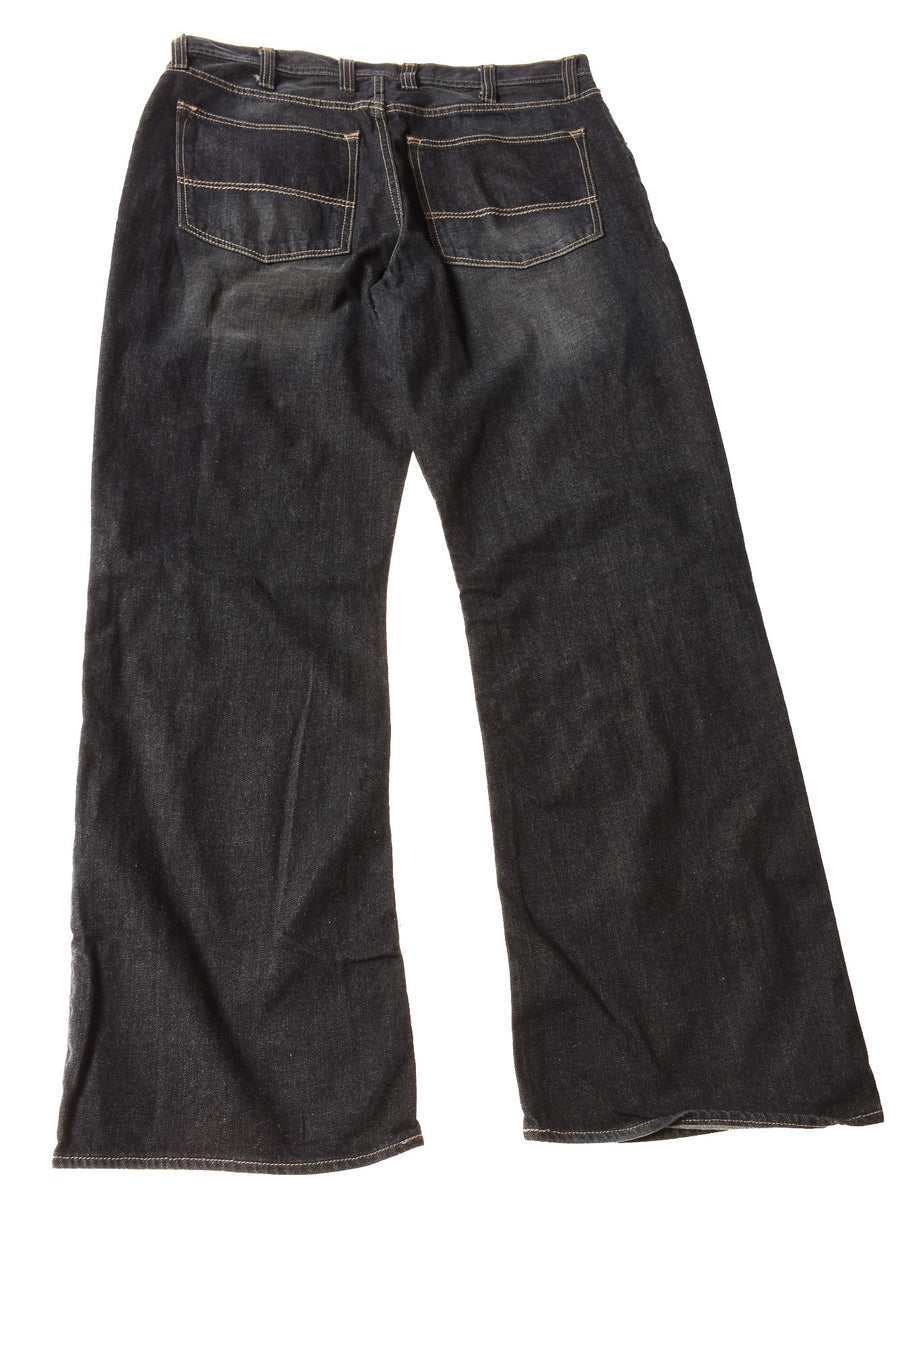 USED Arizona Jeans Men's Jeans 36 Dark Blue